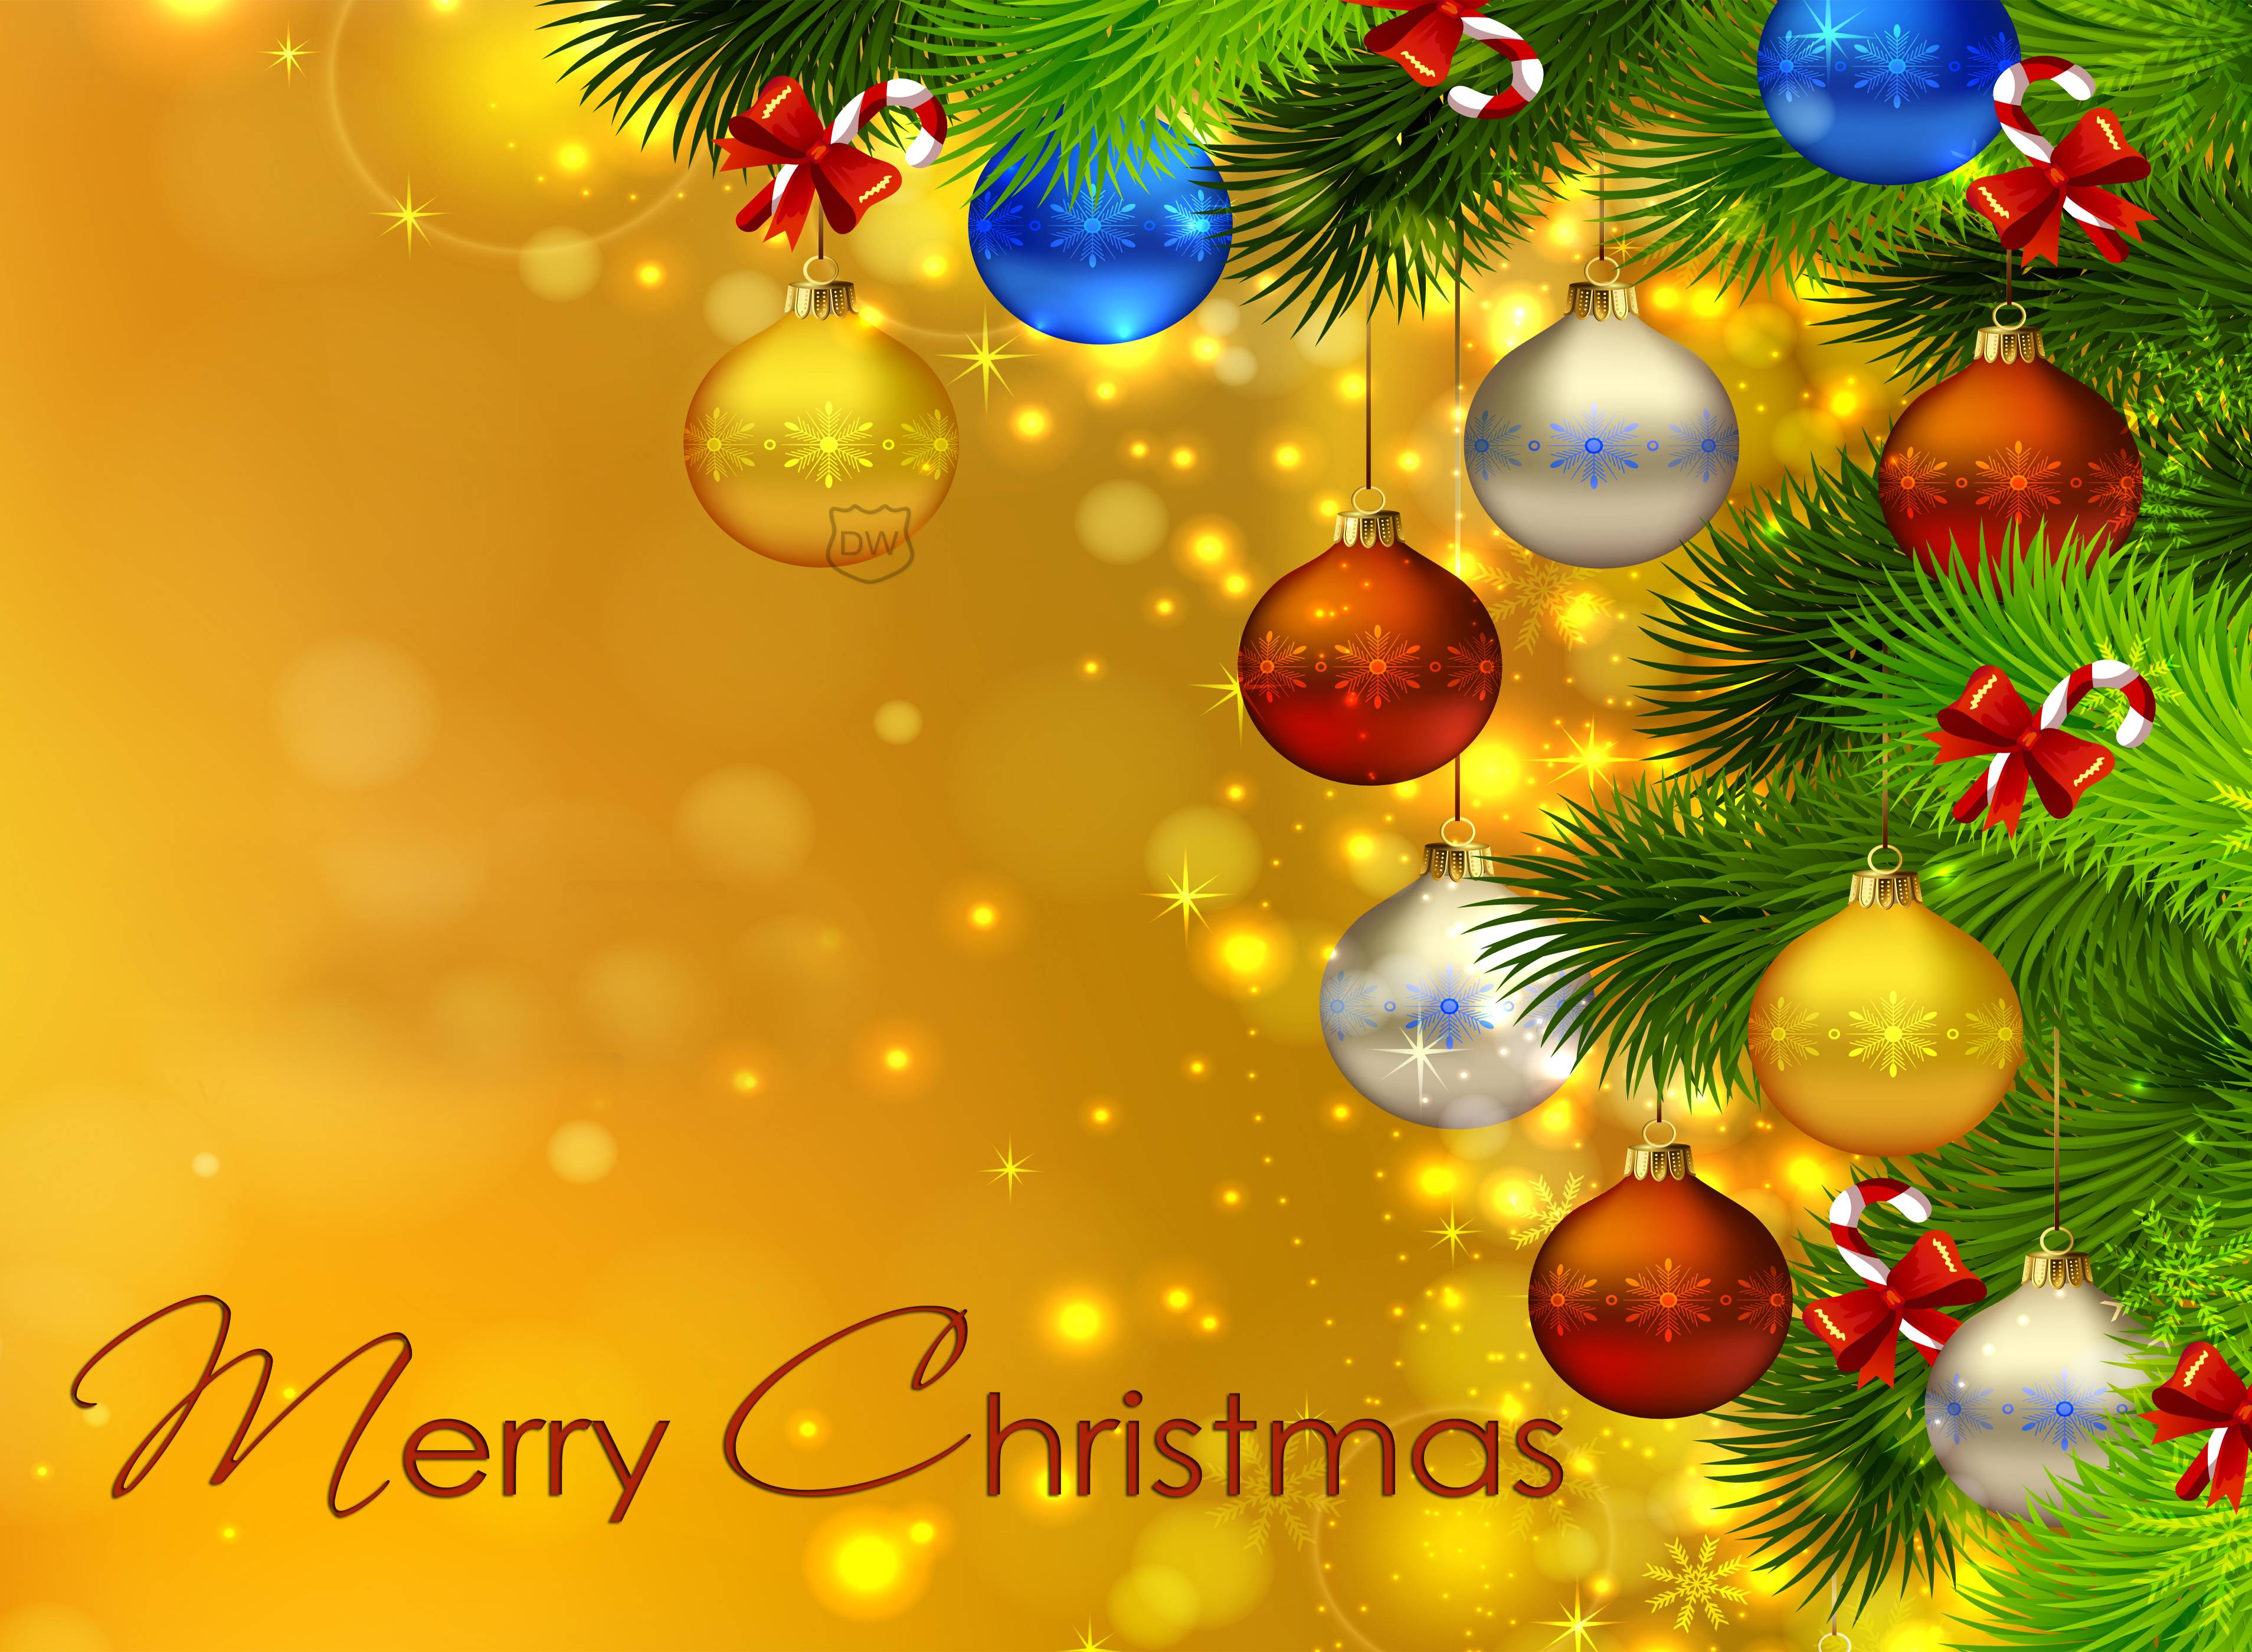 merry christmas wallpapers free - wallpaper cave